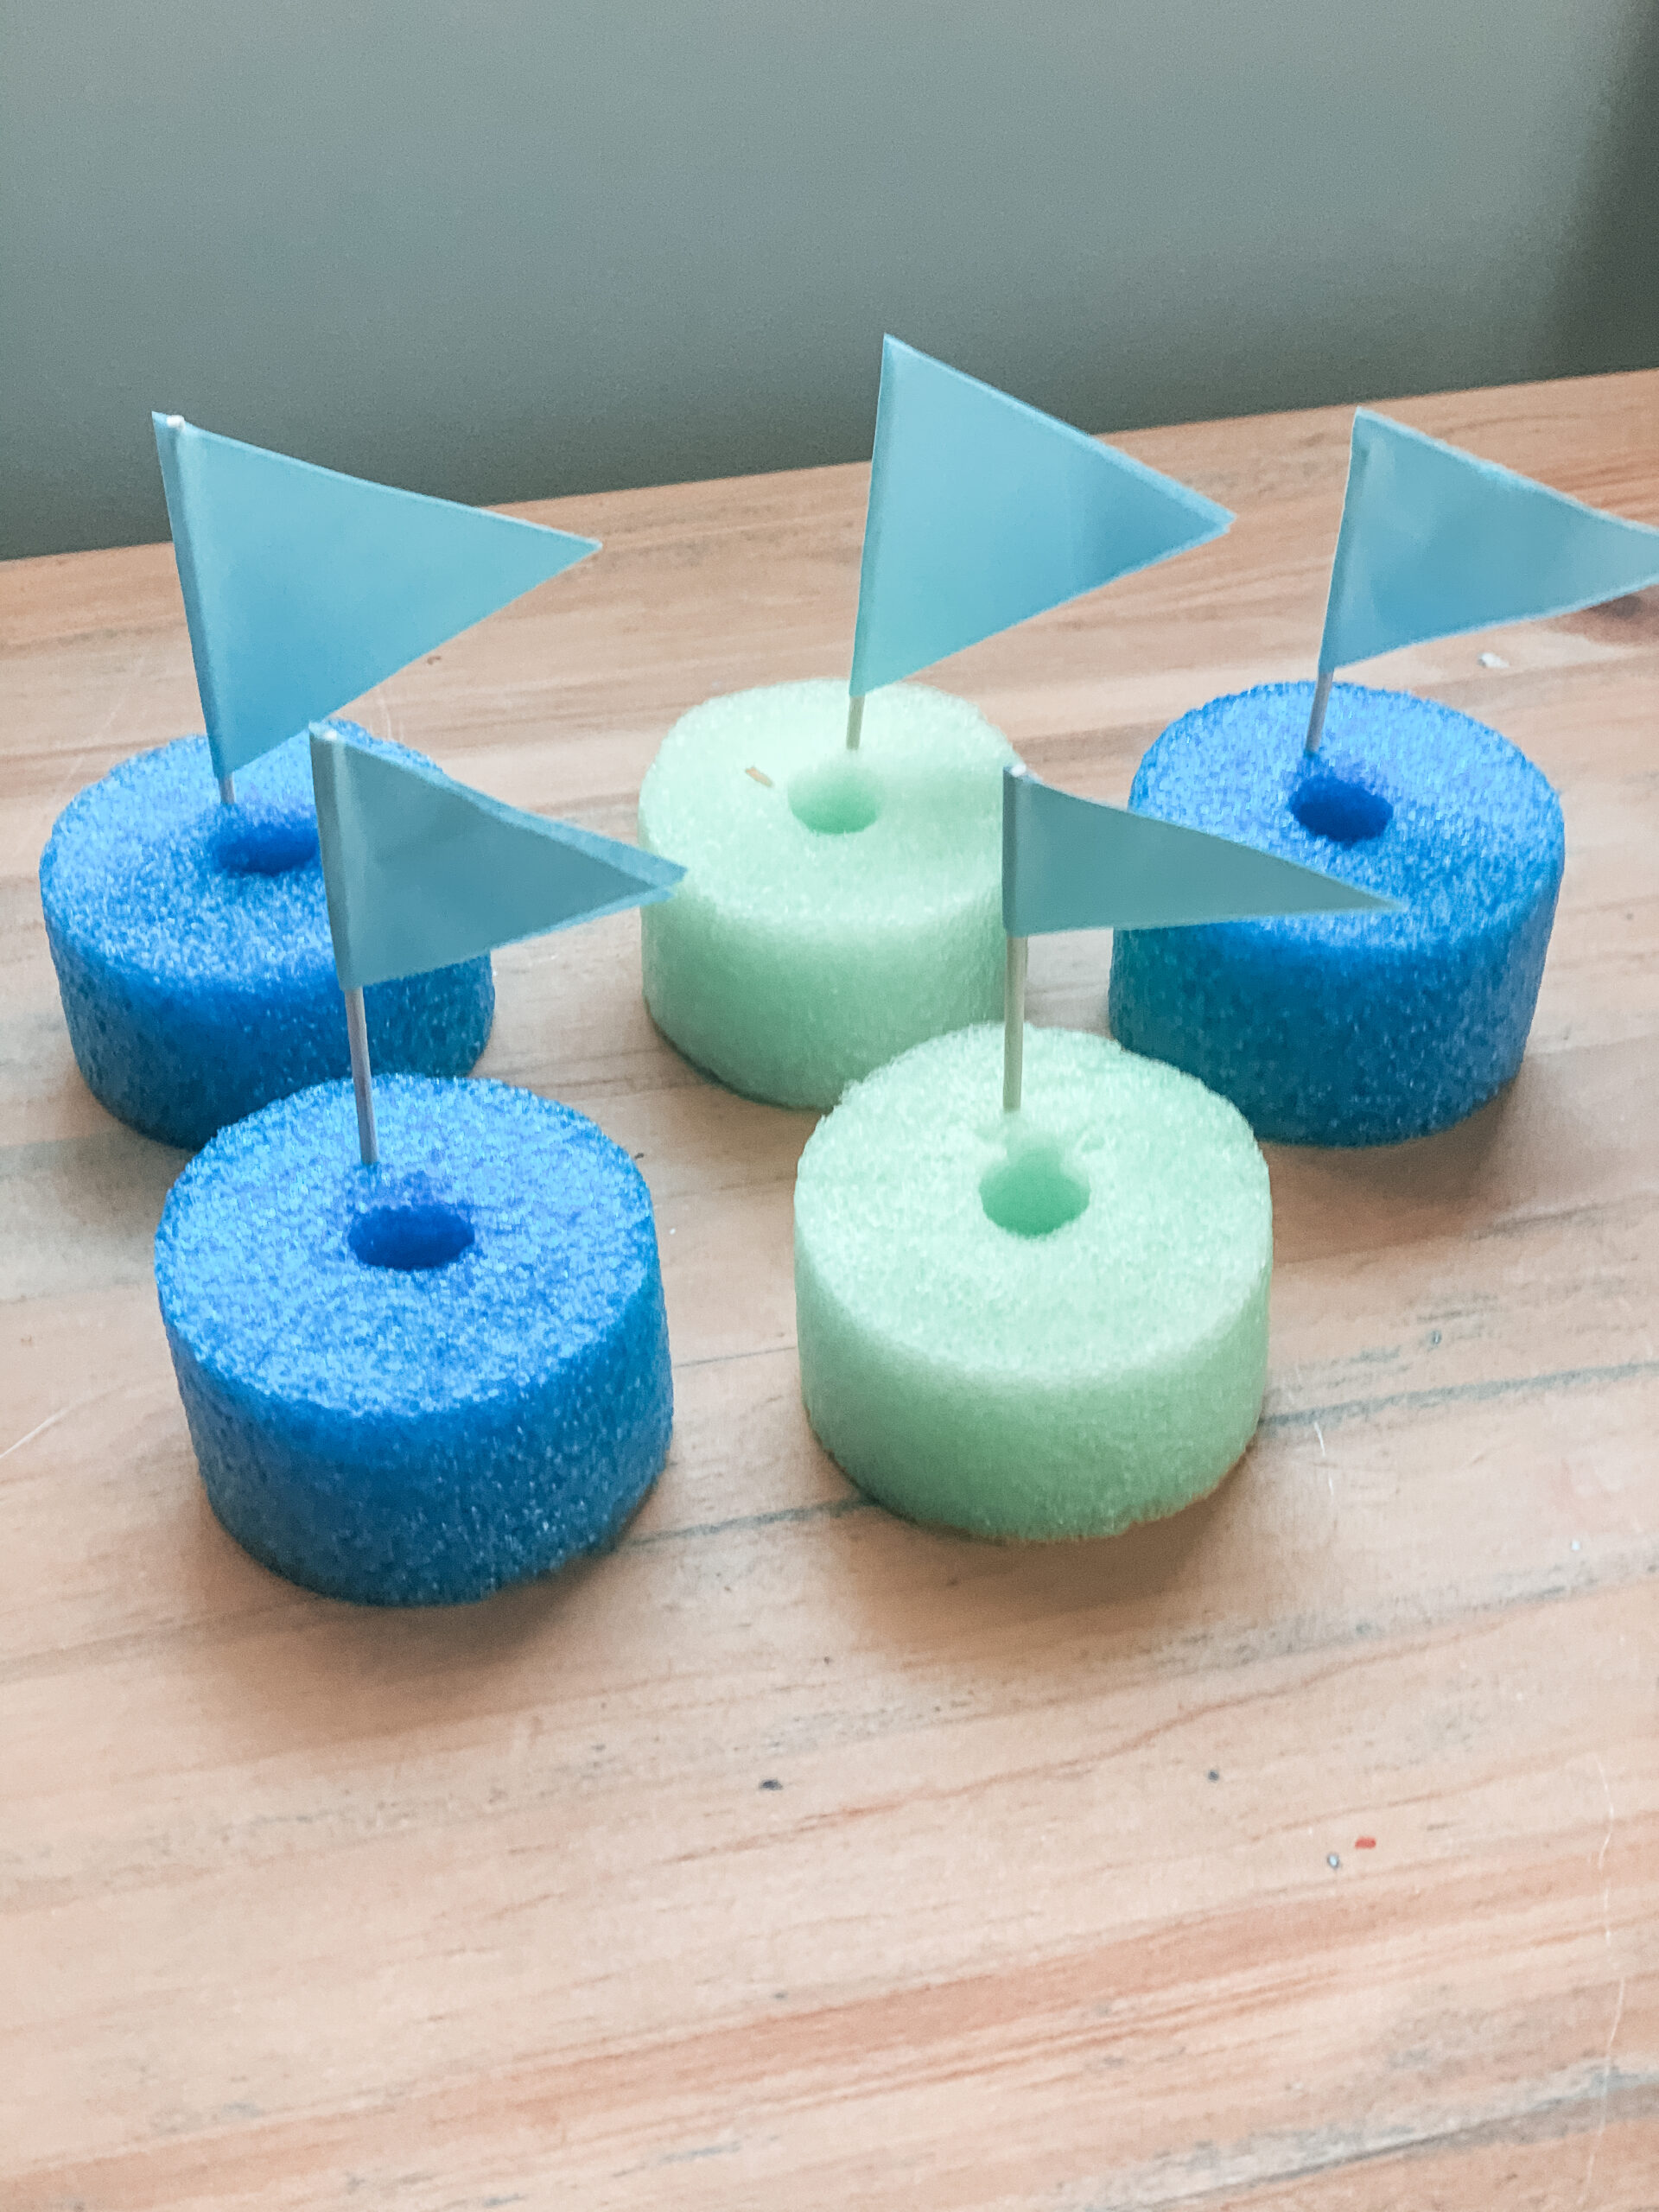 Toy boats for kids made of pool noodles